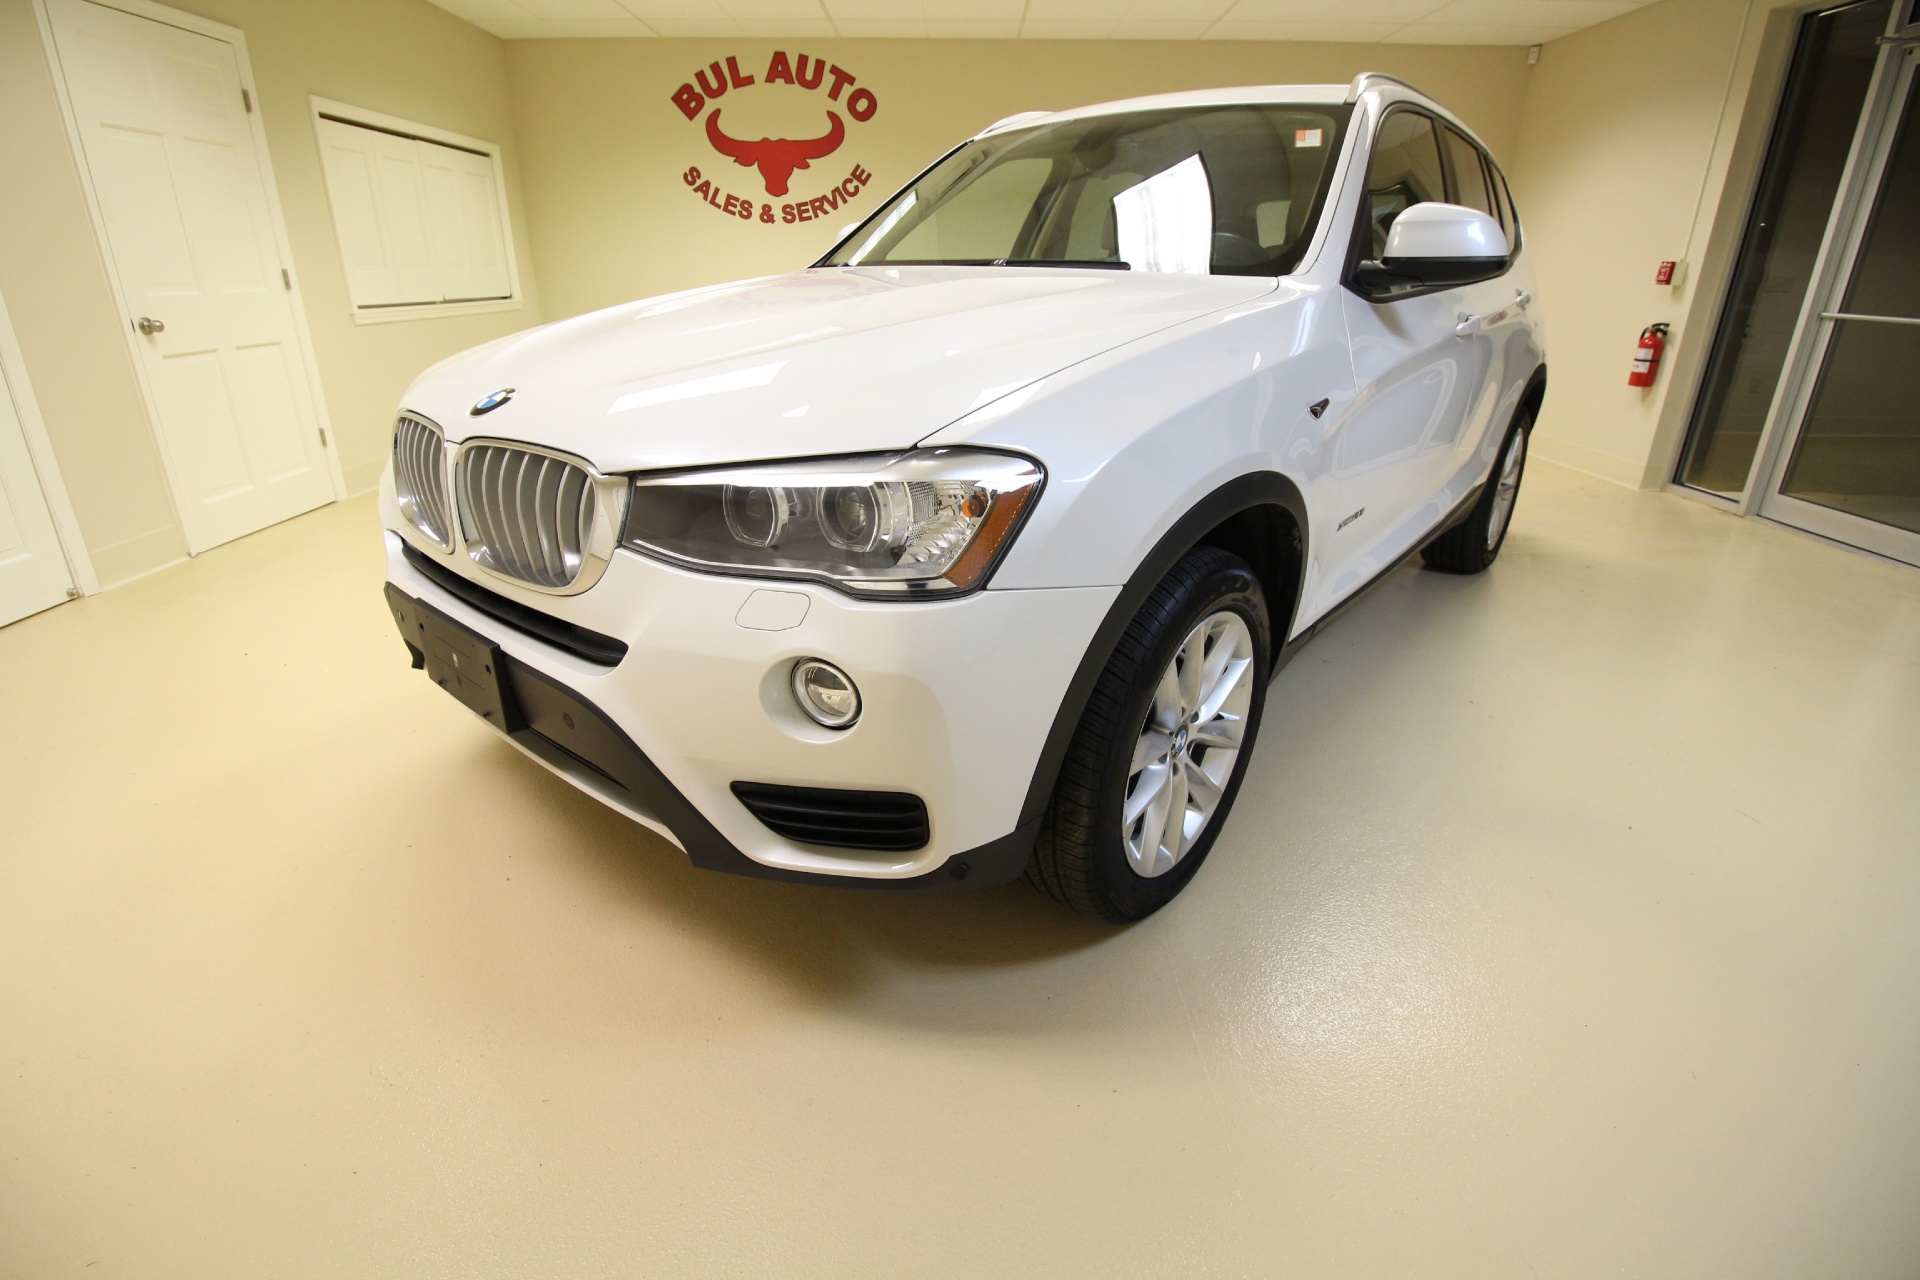 2015 bmw x3 xdrive28i super loaded with options stock 16214 for sale near albany ny ny bmw. Black Bedroom Furniture Sets. Home Design Ideas